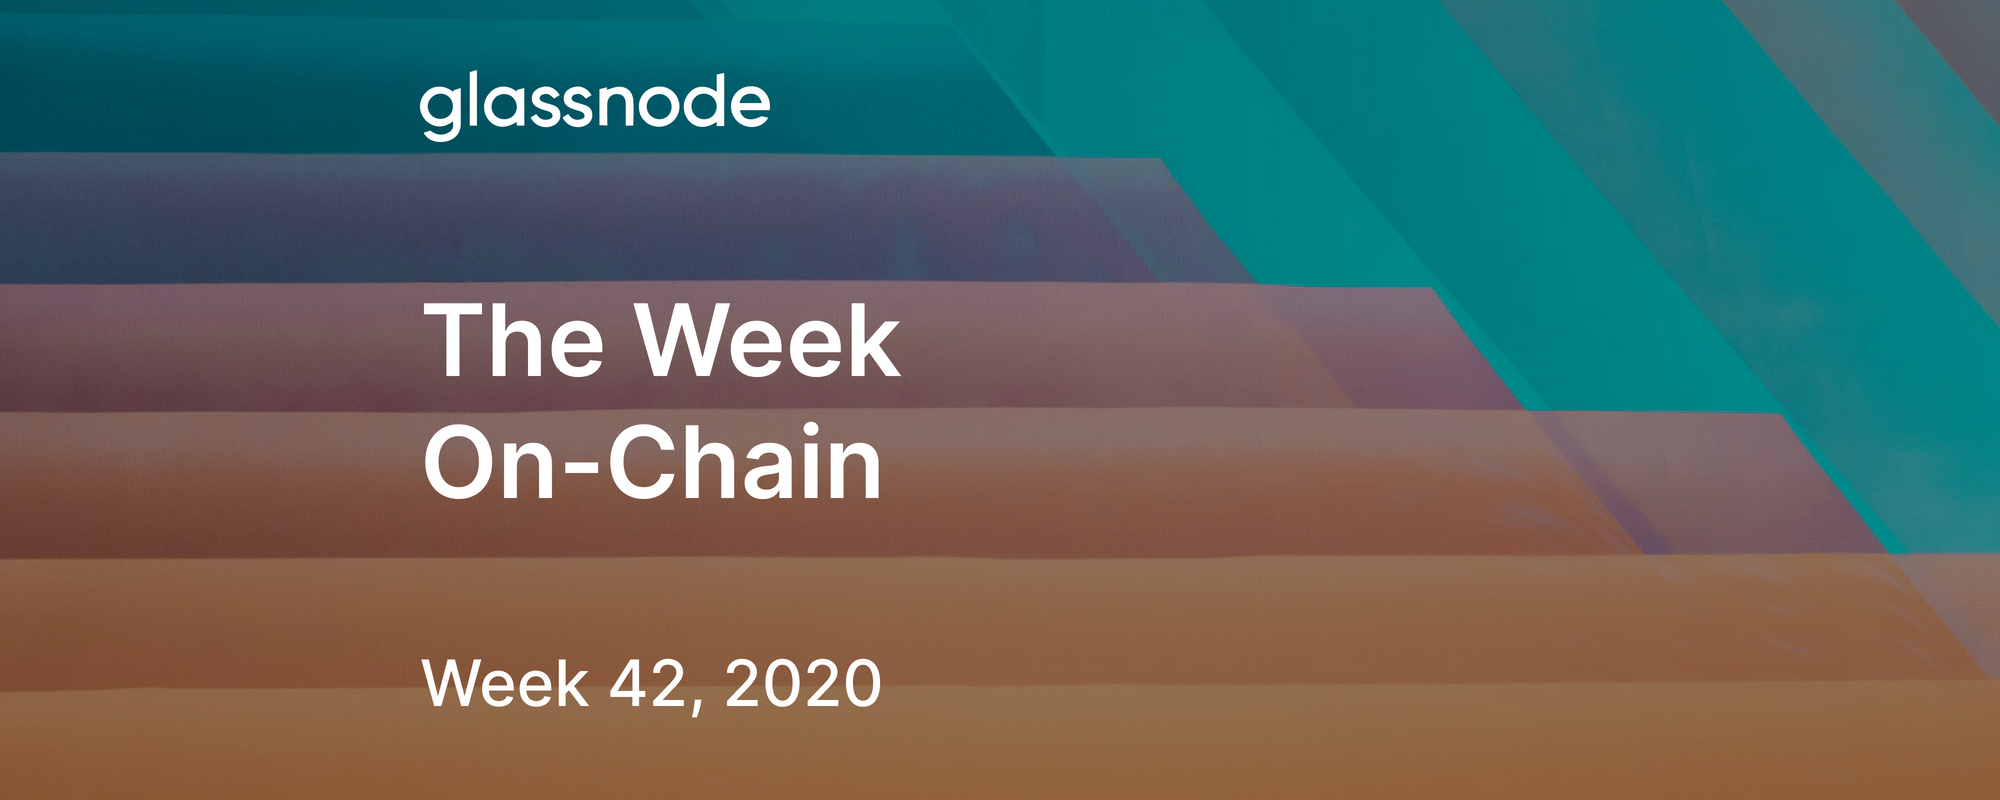 The Week On-Chain (Week 42, 2020)